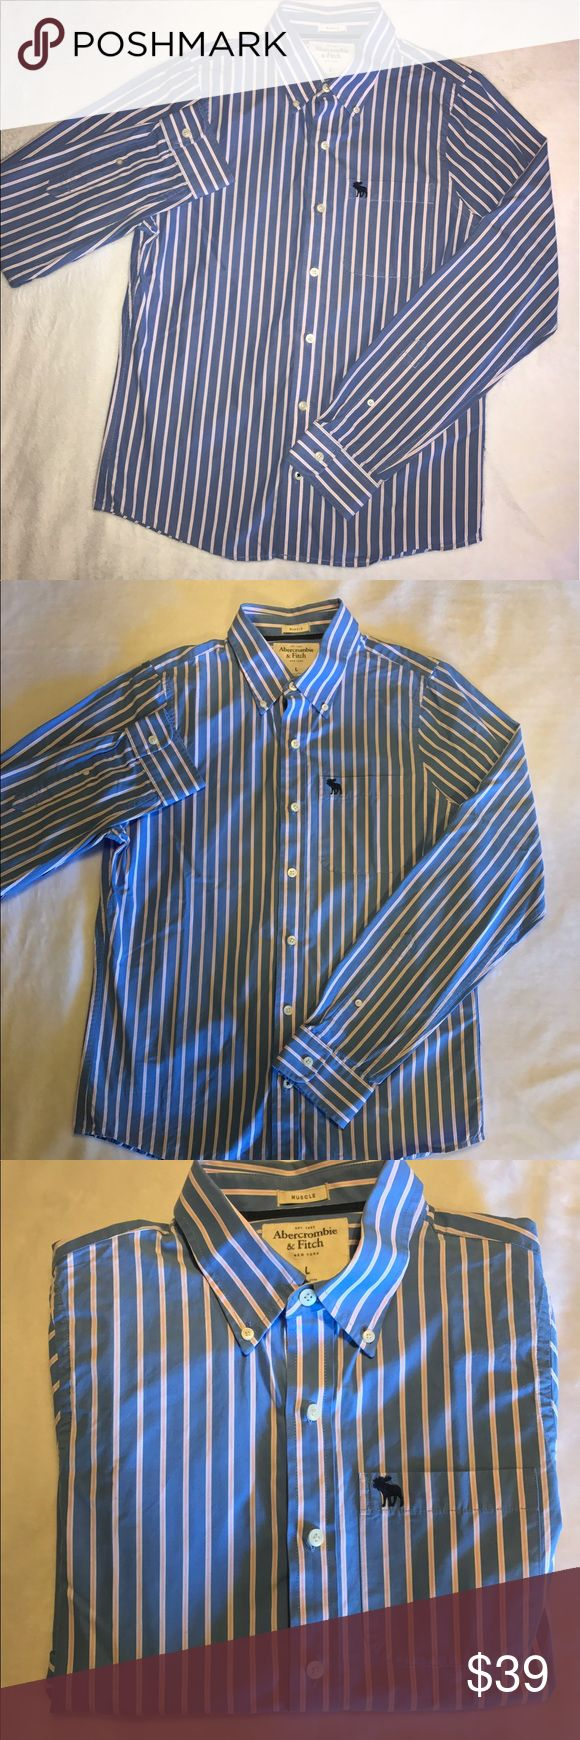 🎁ONE DAY SALE Men's Abercrombie Dress Shirt Men's Abercrombie & Fitch Muscle Fit Dress Shirt - Size Large - Like New, Only Worn Once. Abercrombie & Fitch Shirts Dress Shirts